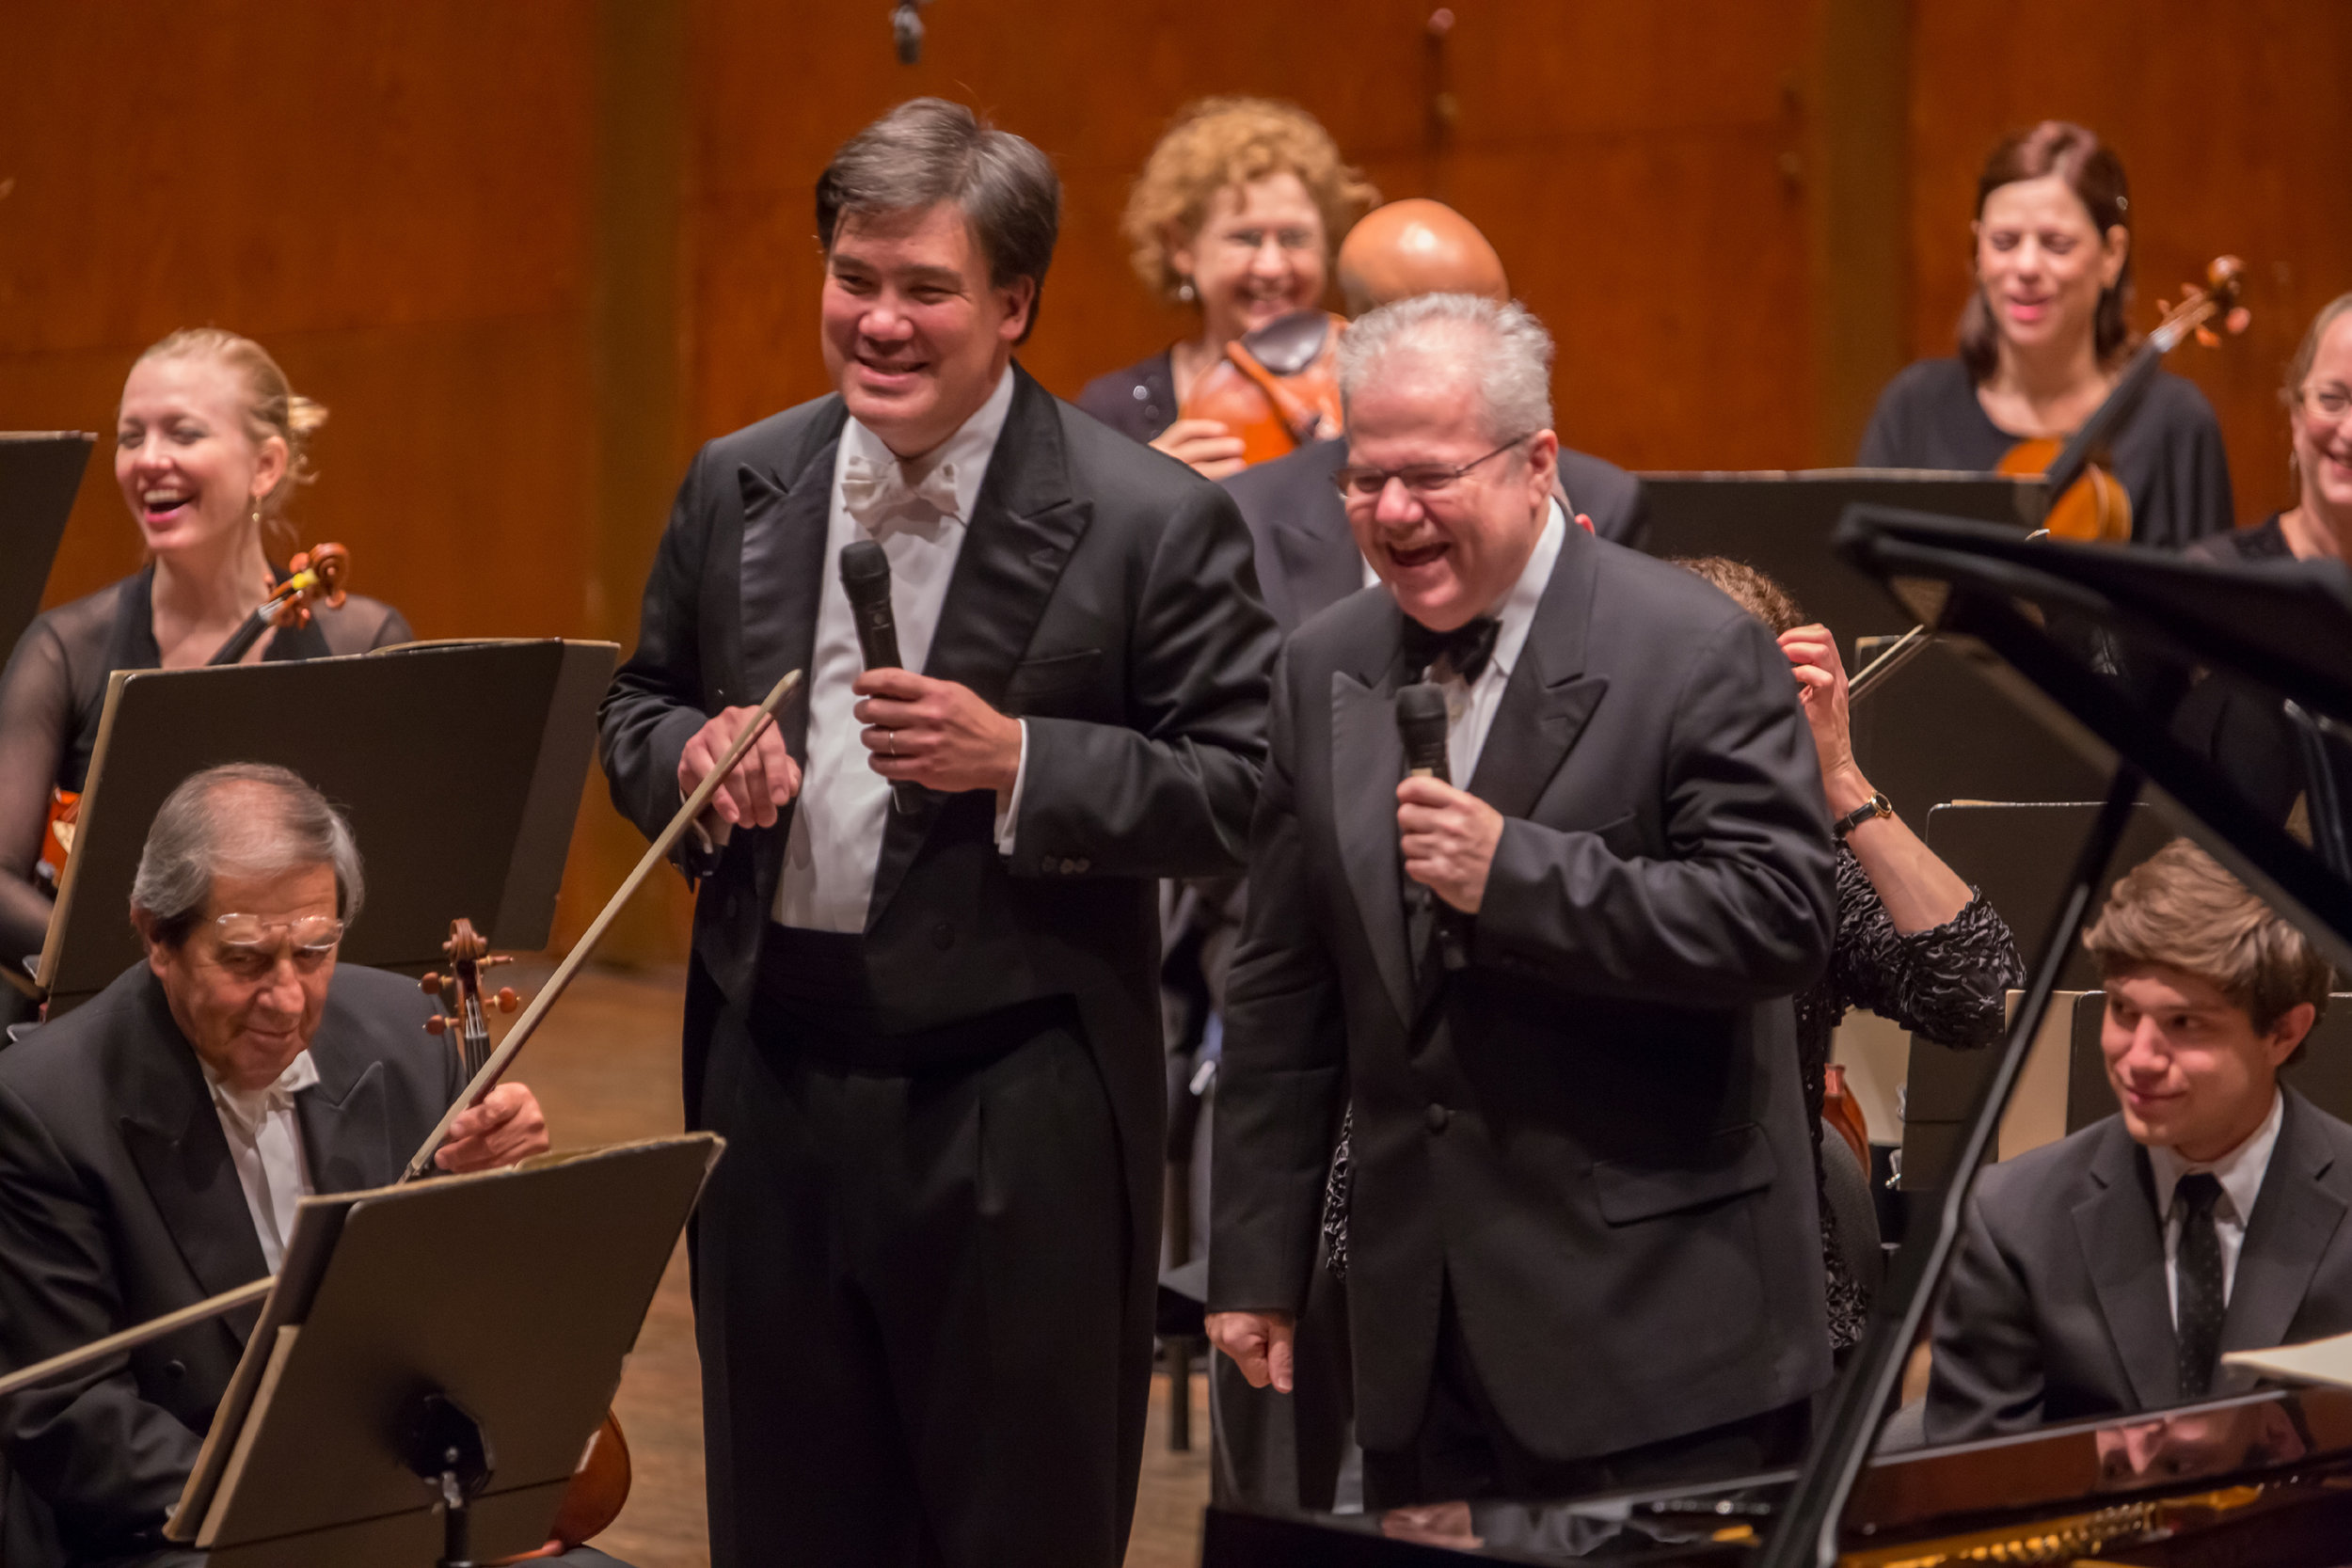 Pianist Emanuel Ax served as Artist-in-Residence (2012–13) after being named an Honorary Member of the Philharmonic-Symphony Society of New York on the occasion of his 100th performance with the Orchestra. He performed concertos by J.S. Bach, Schoenberg, and Mozart; reprised Composer-in-Residence Christopher Rouse's  Seeing,  a Philharmonic commission, which the pianist and the Orchestra had premiered in 1999; and traveled on the Orchestra's Europe tour.